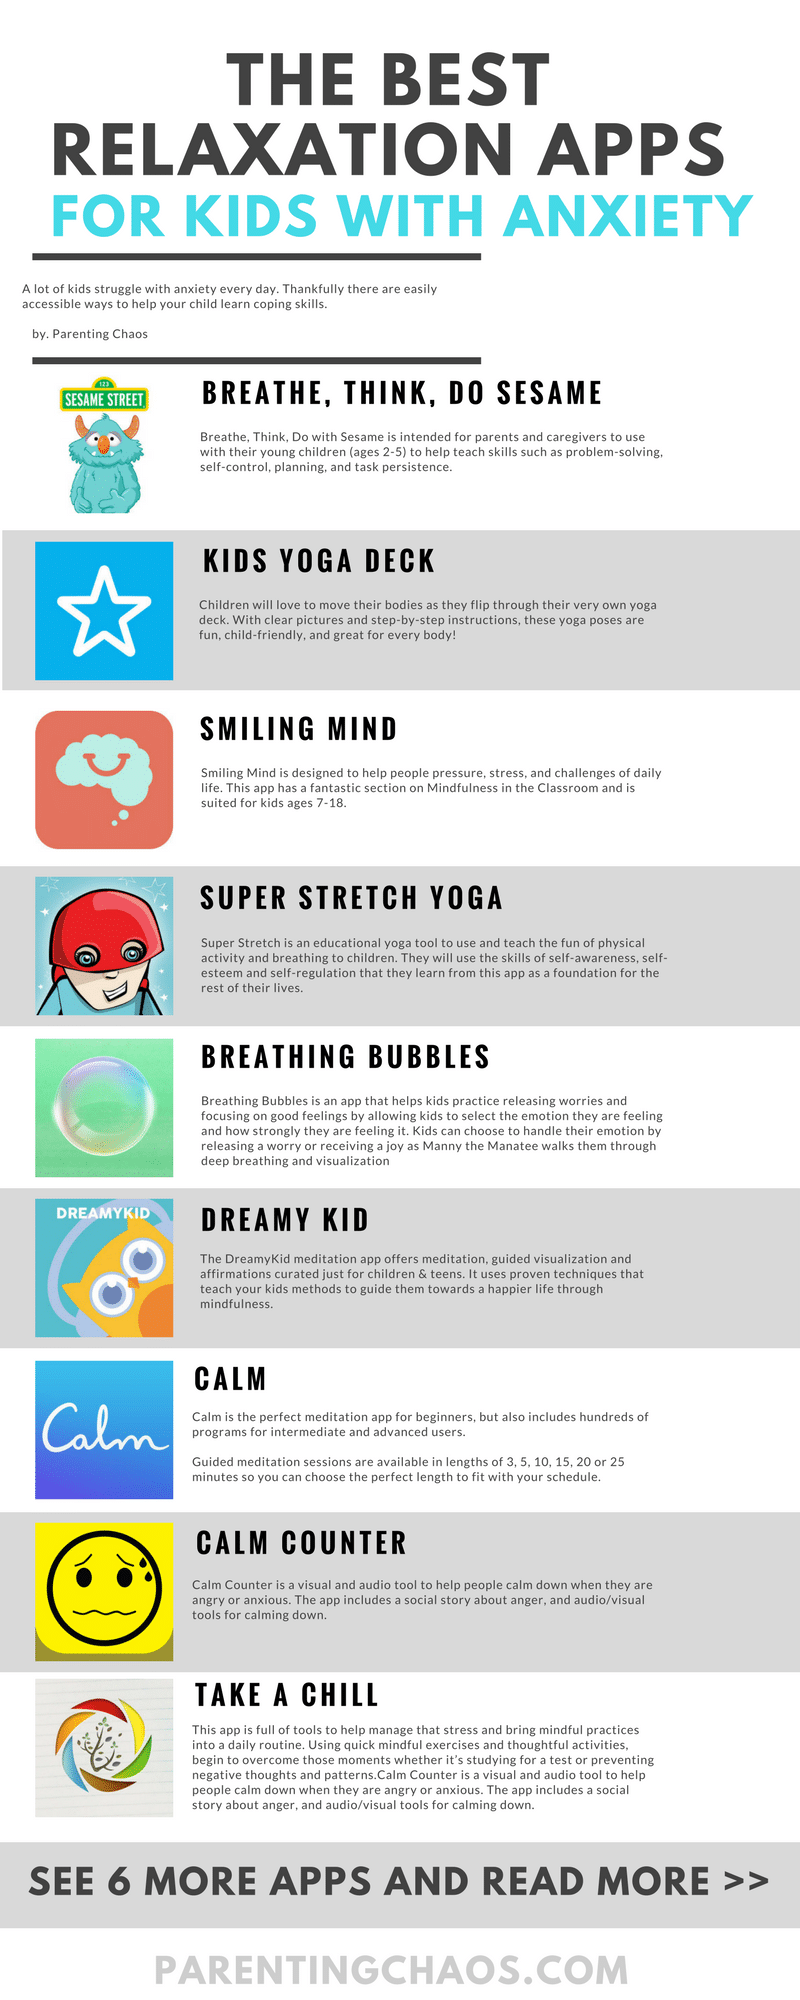 15 Apps for Kids with Anxiety